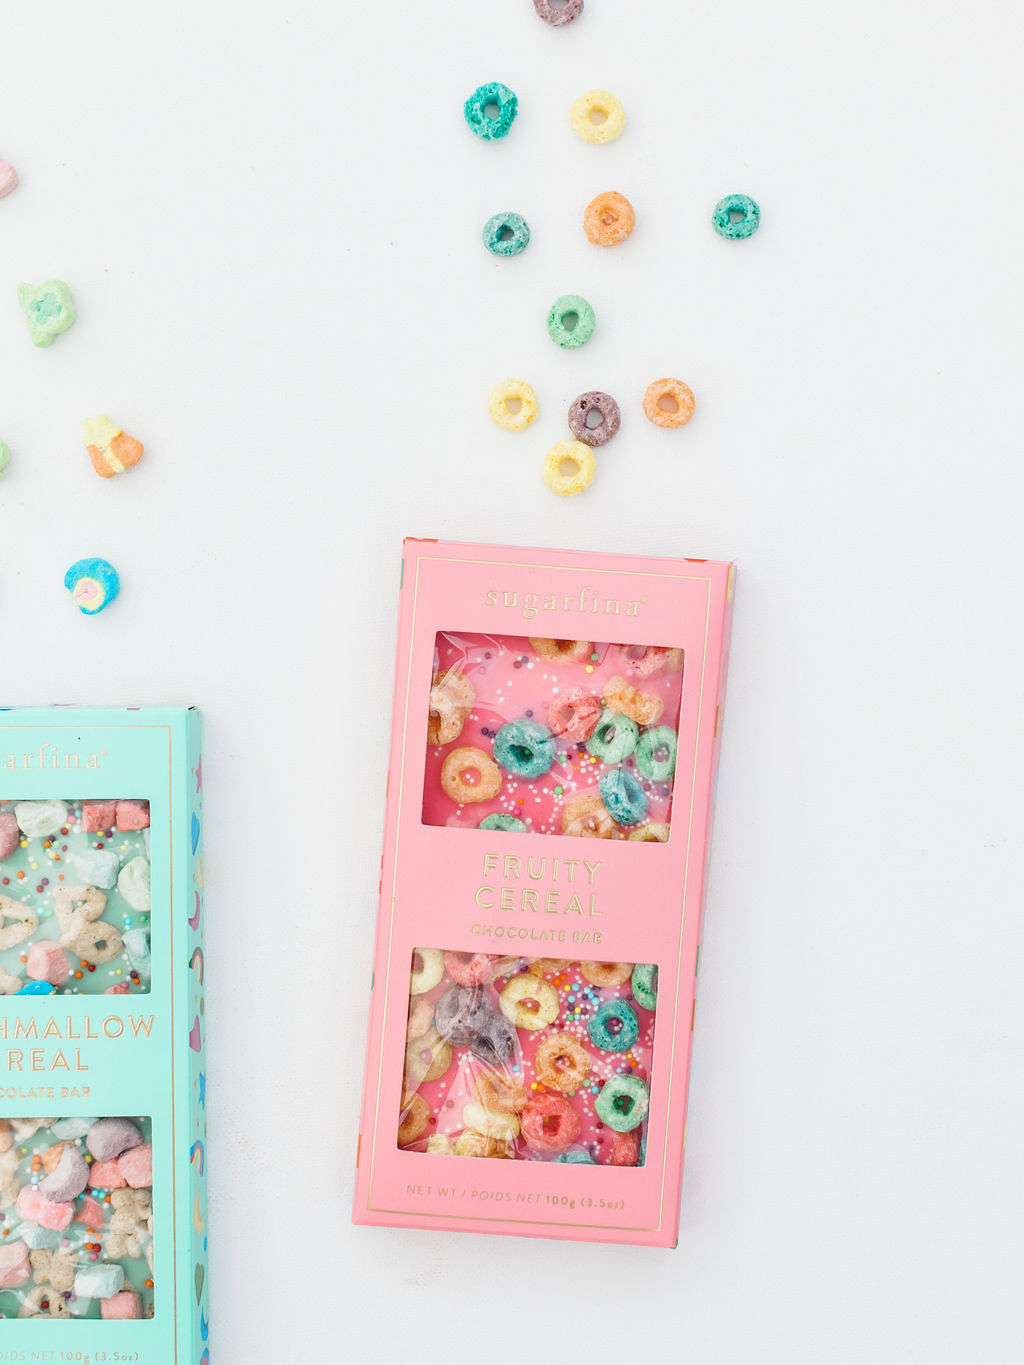 Sugarfina Fruity Cereal from Kids Birthday Brunch Styled by Deets & Things | Black Twine